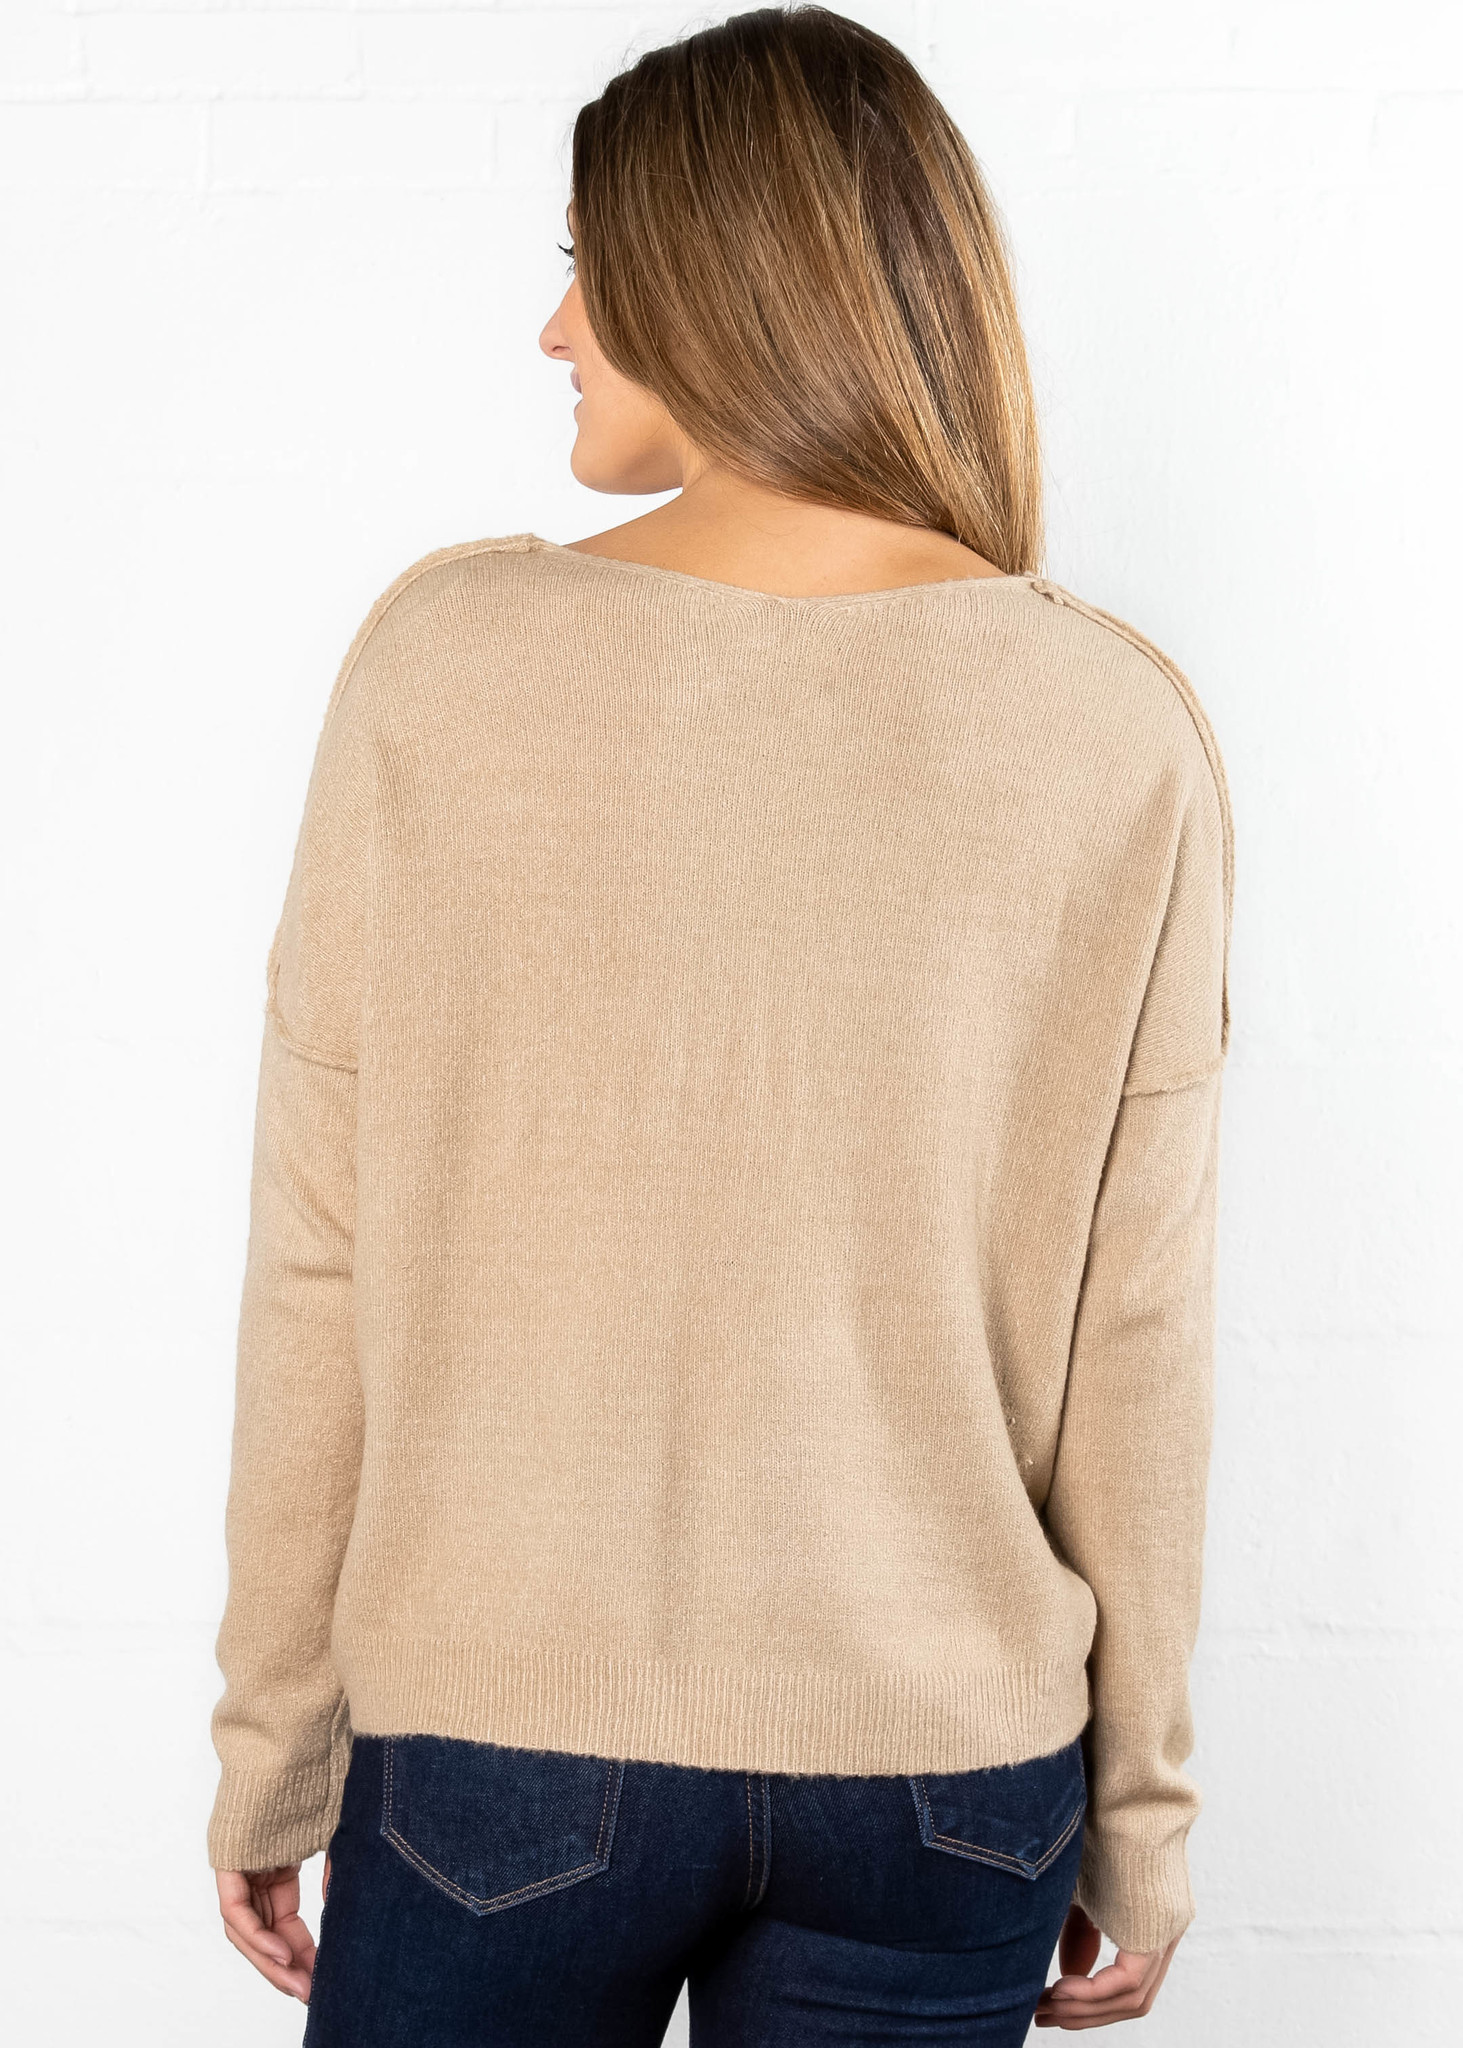 OUR SONG CARDIGAN - TAUPE